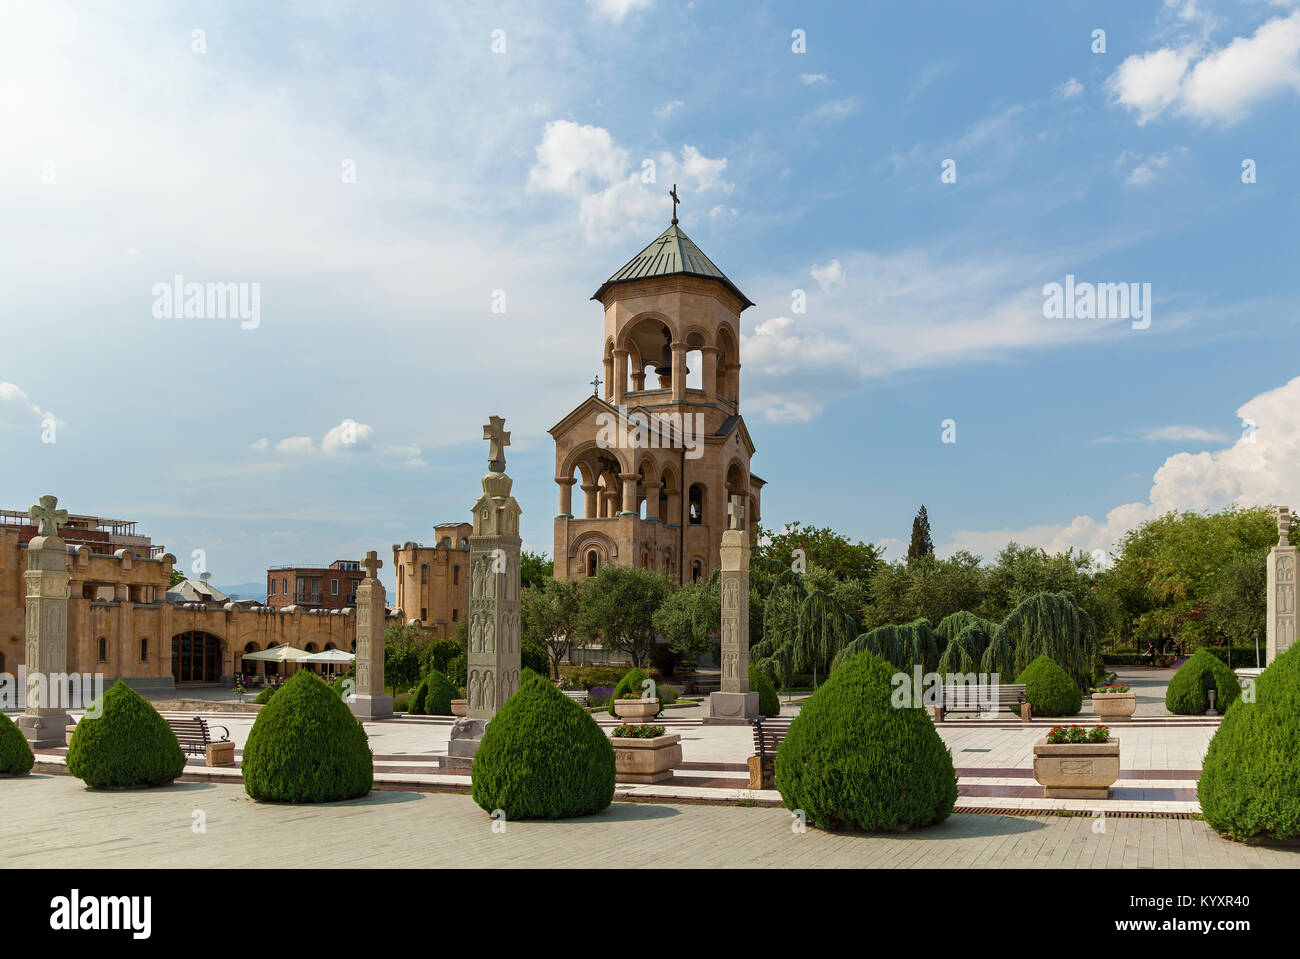 The Holy Trinity Cathedral of Tbilisi. - Stock Image